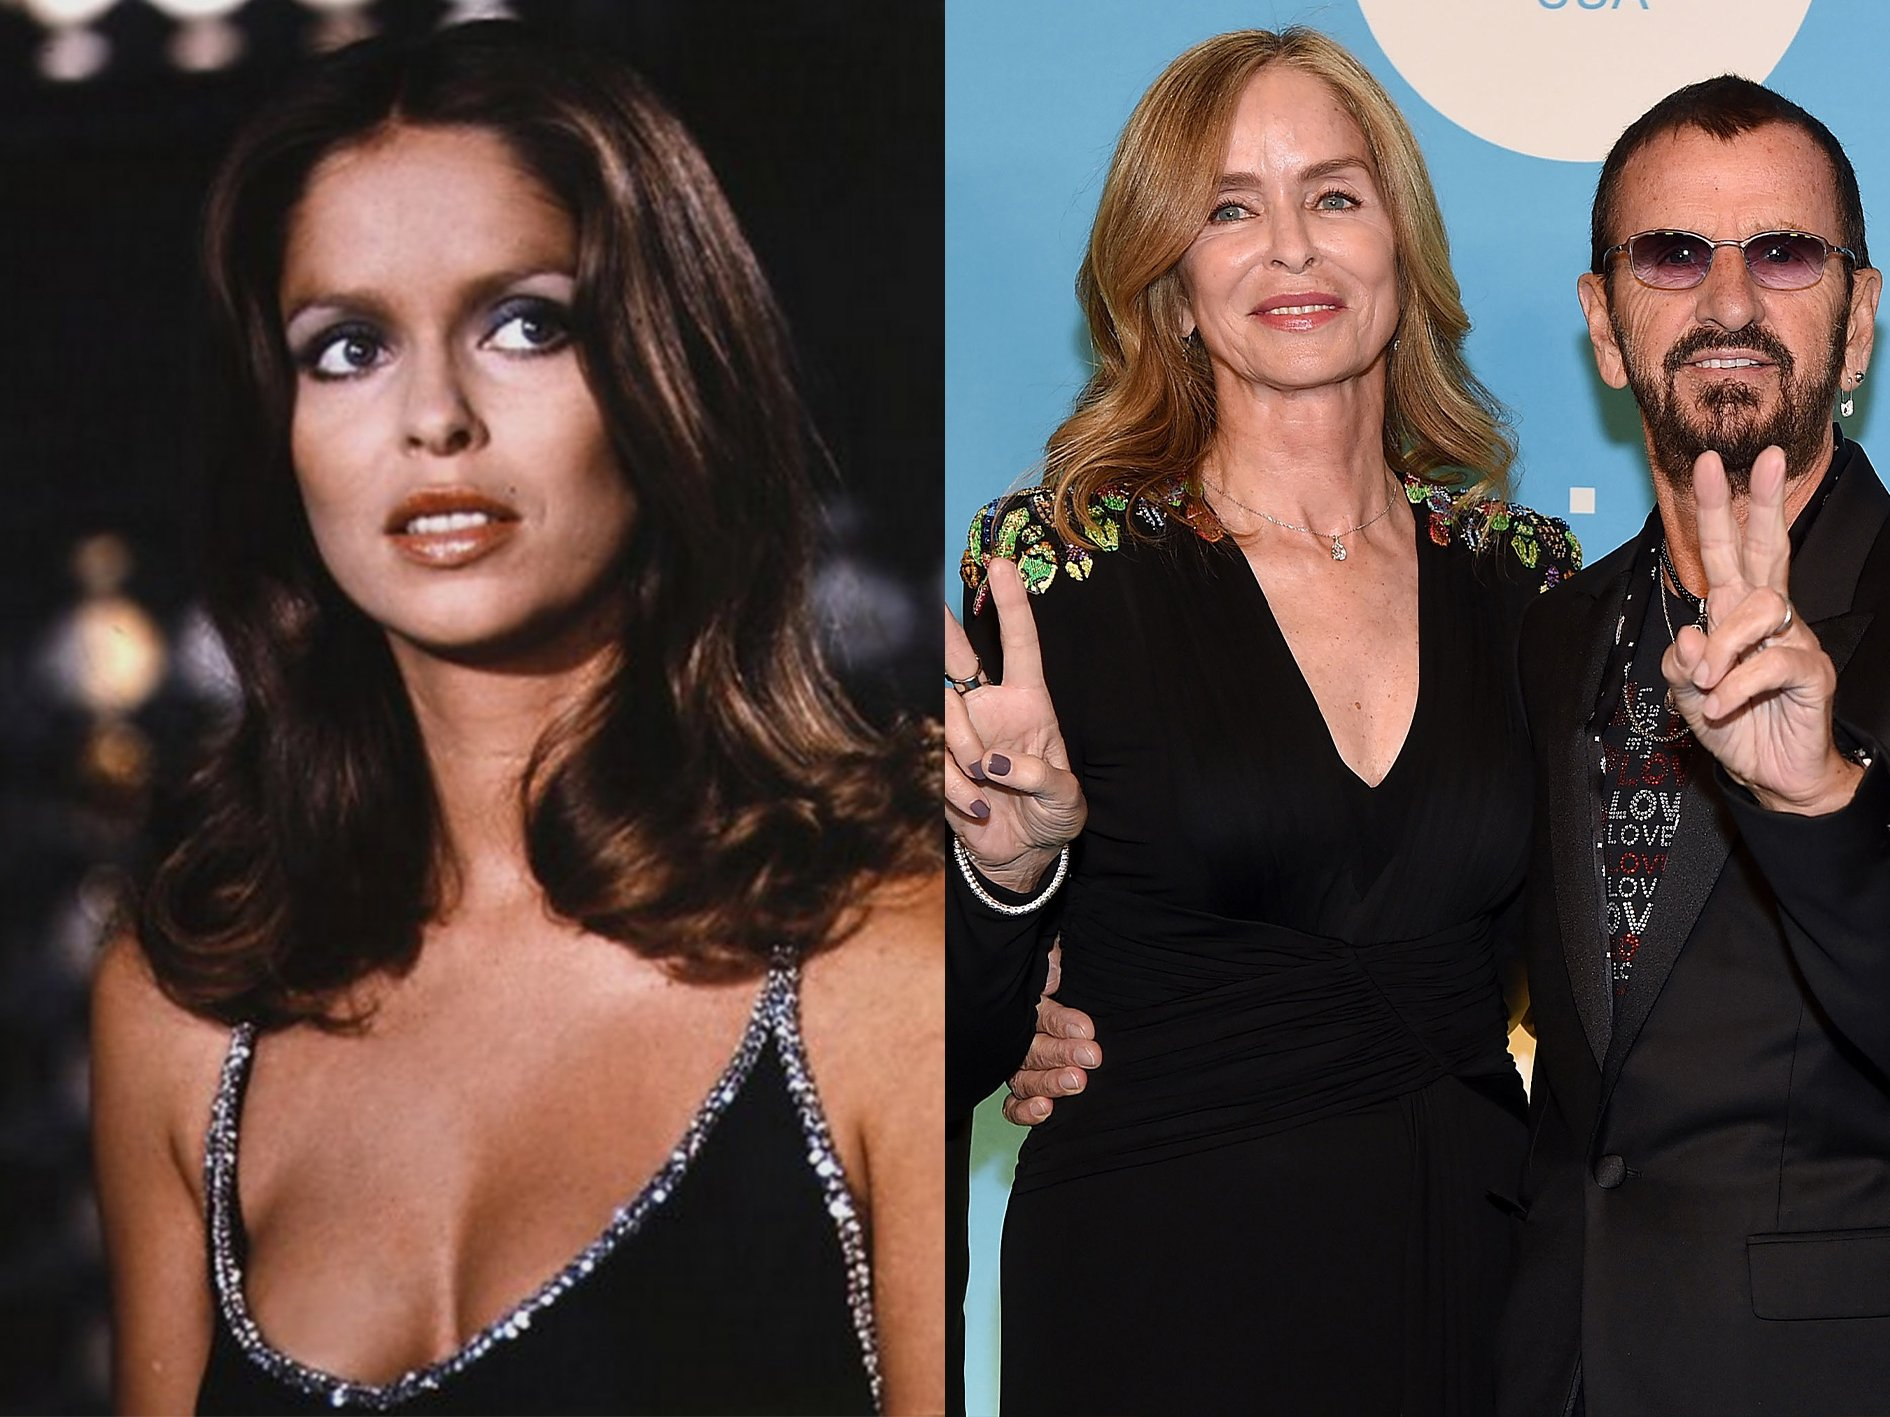 Barbara Bach The Spy Who Loved Me What Your Favourite Bond Girls Look Like Now